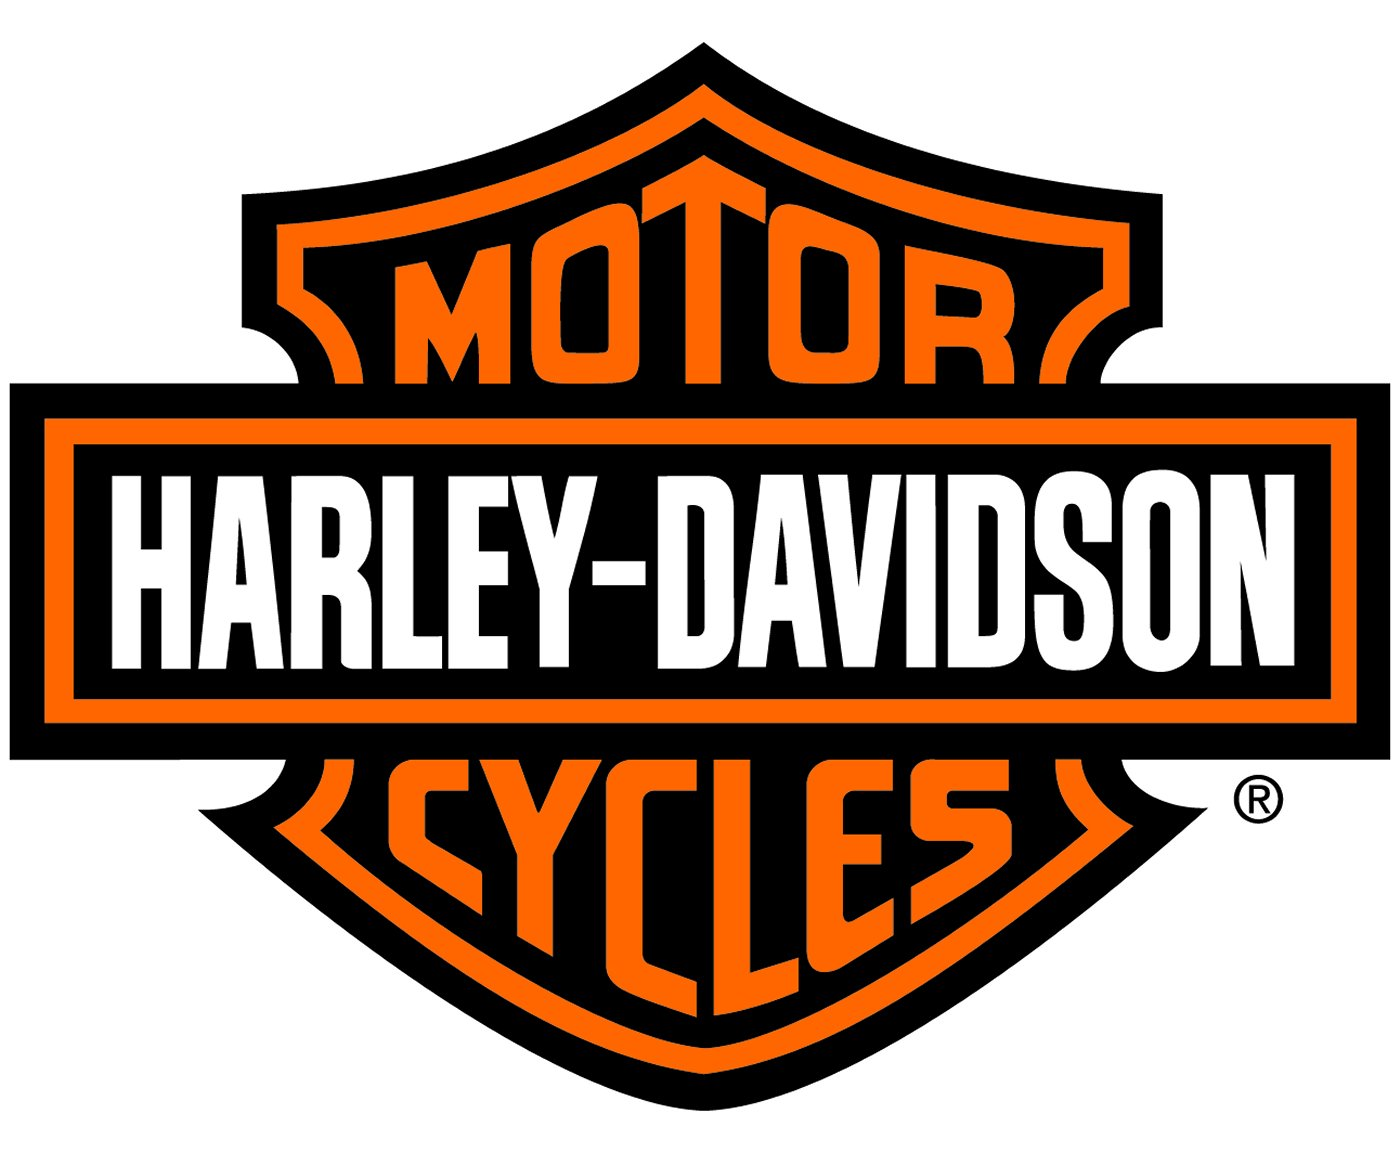 Harley Davidson Logo Outline 292 X 213 8 Kb Jpeg | Top Harley ...